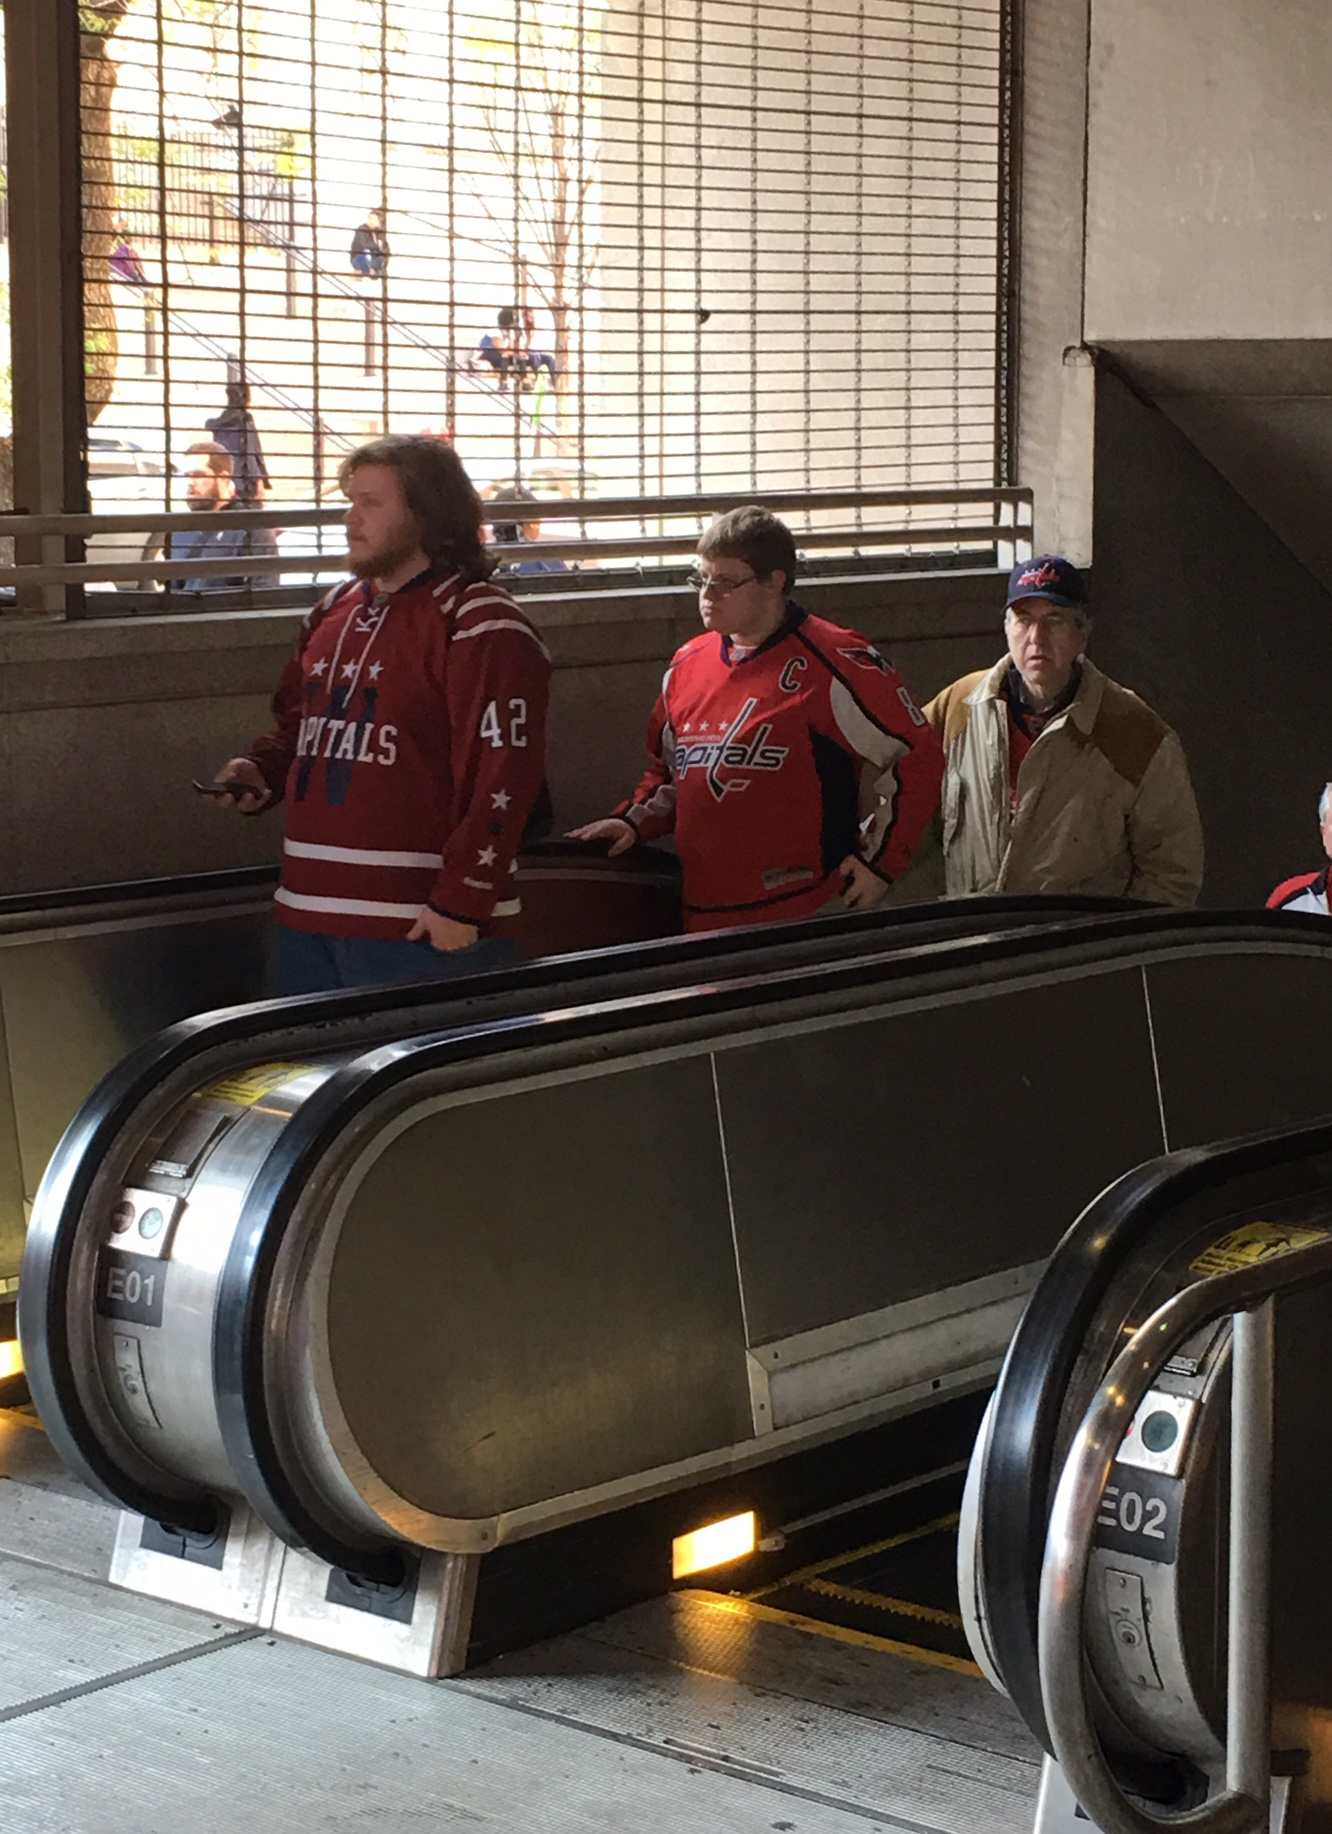 Metro to stay open later for Game 1 of Capitals-Penguins series